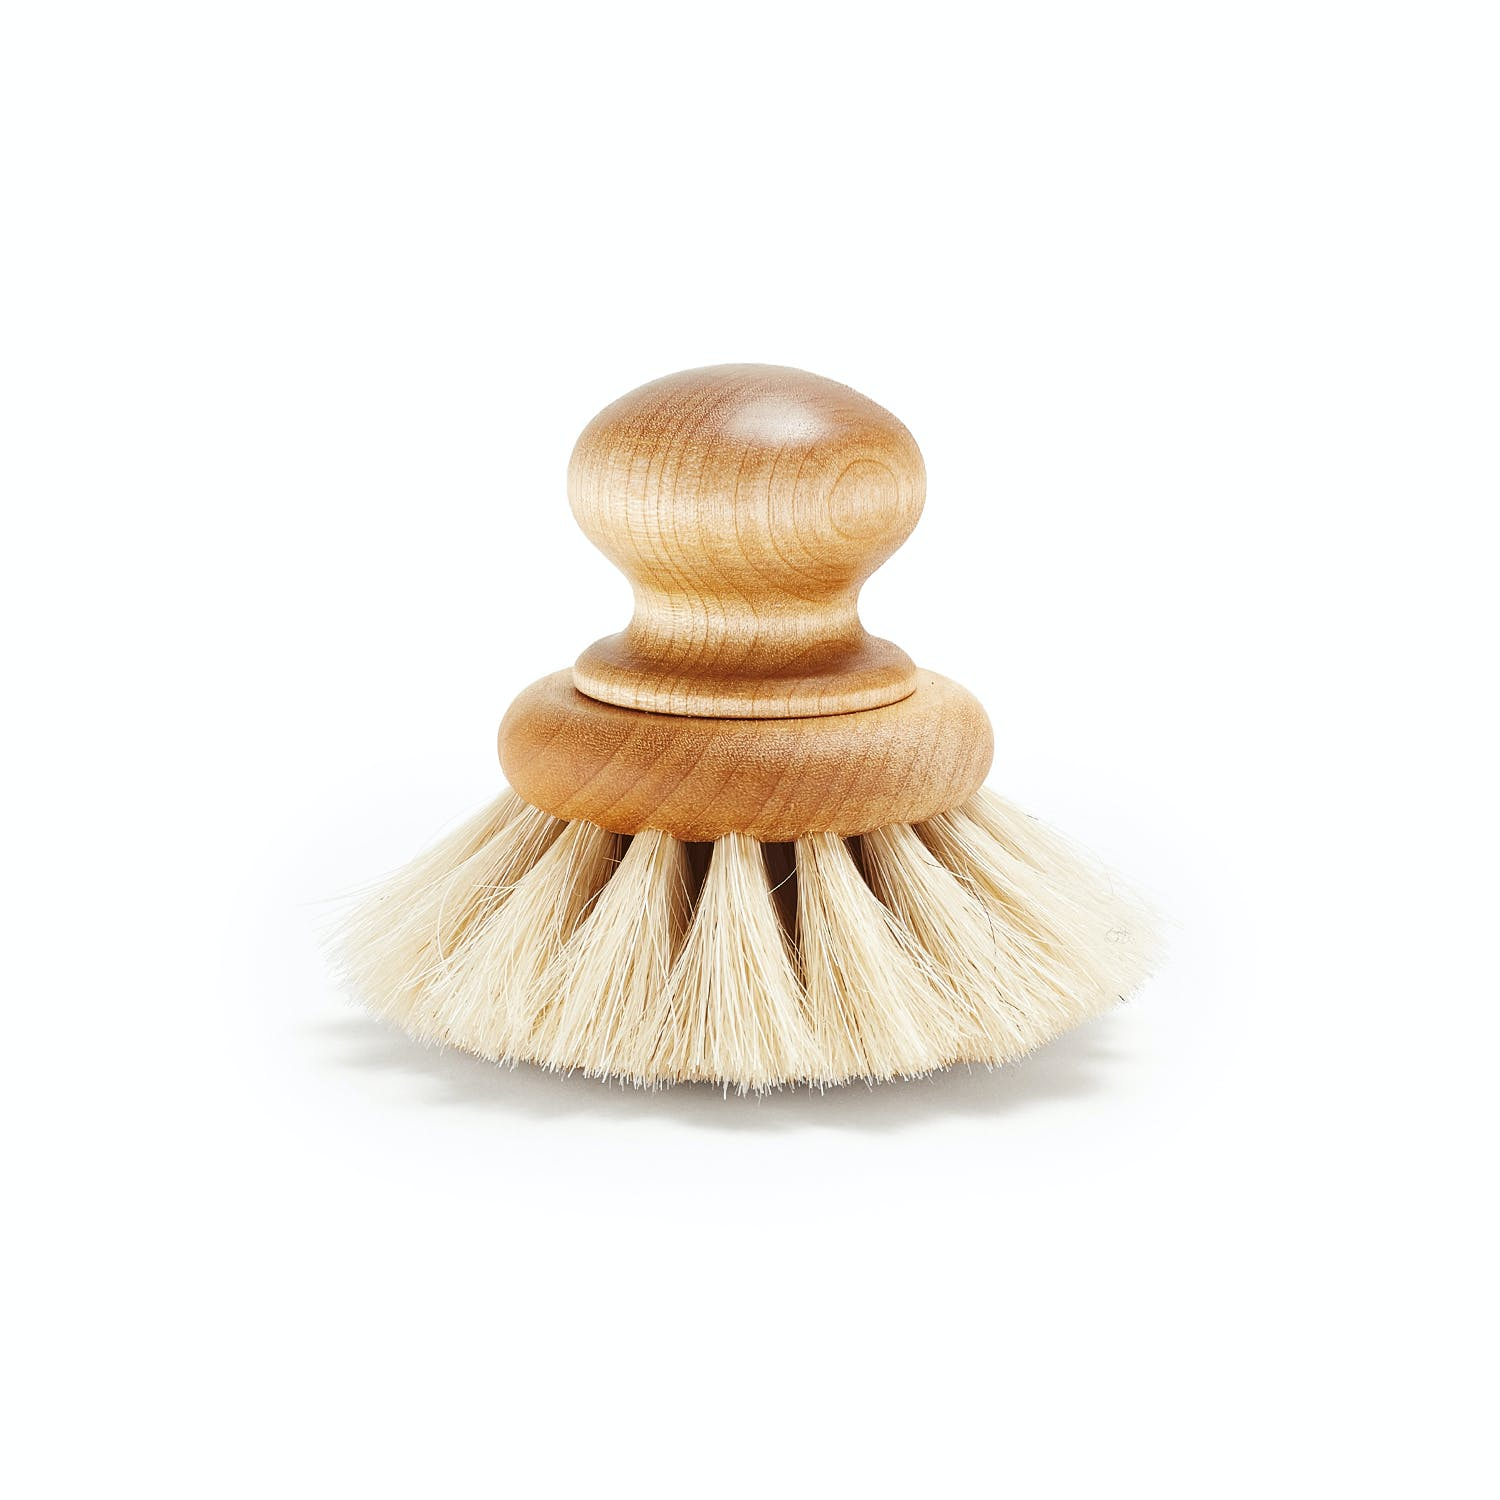 Birchwood Dish Brush